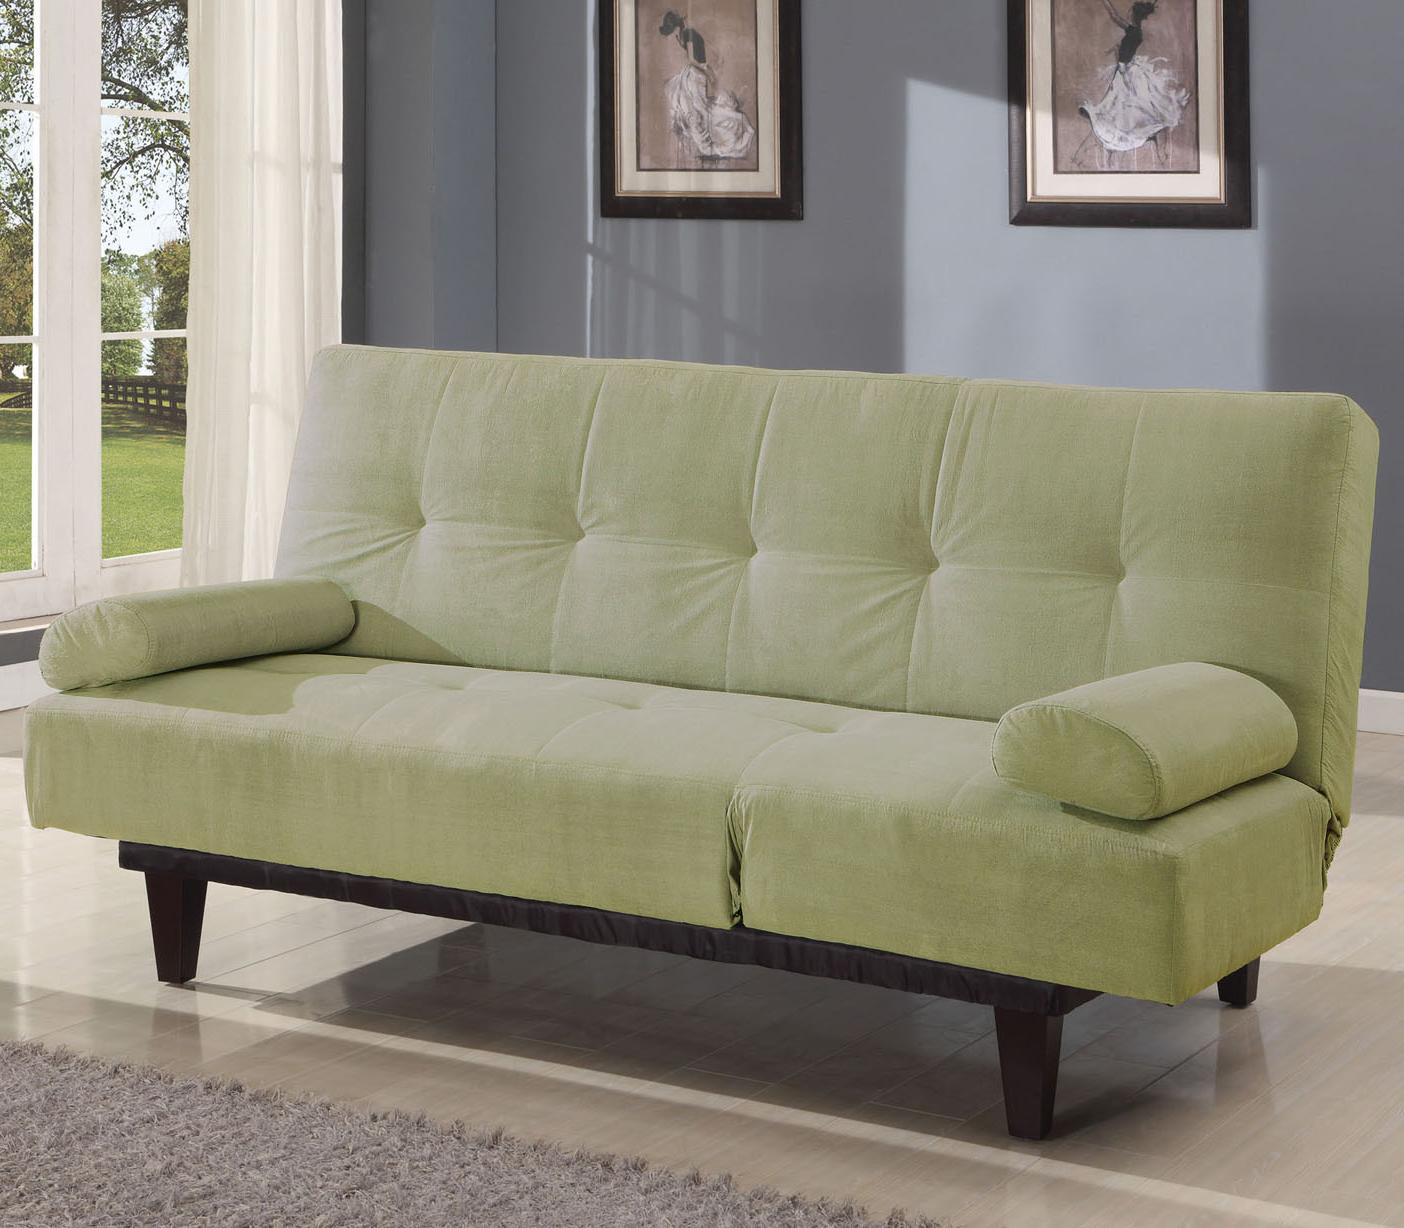 Acme Furniture Cybil Apple Green Adjustable Sofa With 2 Pillows - Item Number: 05855W-SA